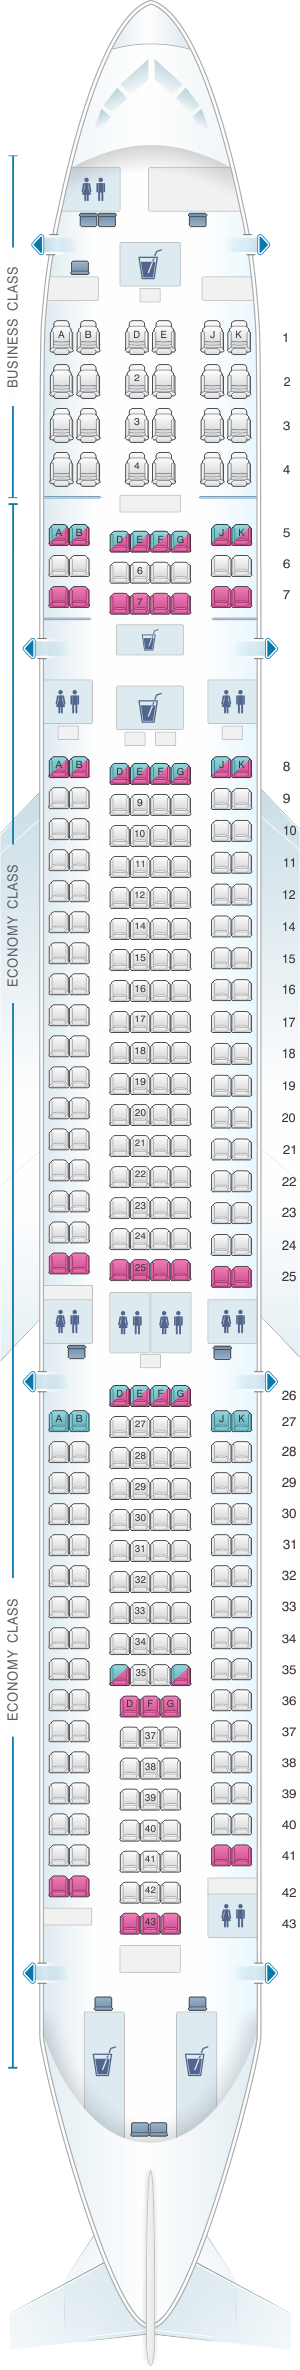 Seat map for Fiji Airways Airbus A330 300